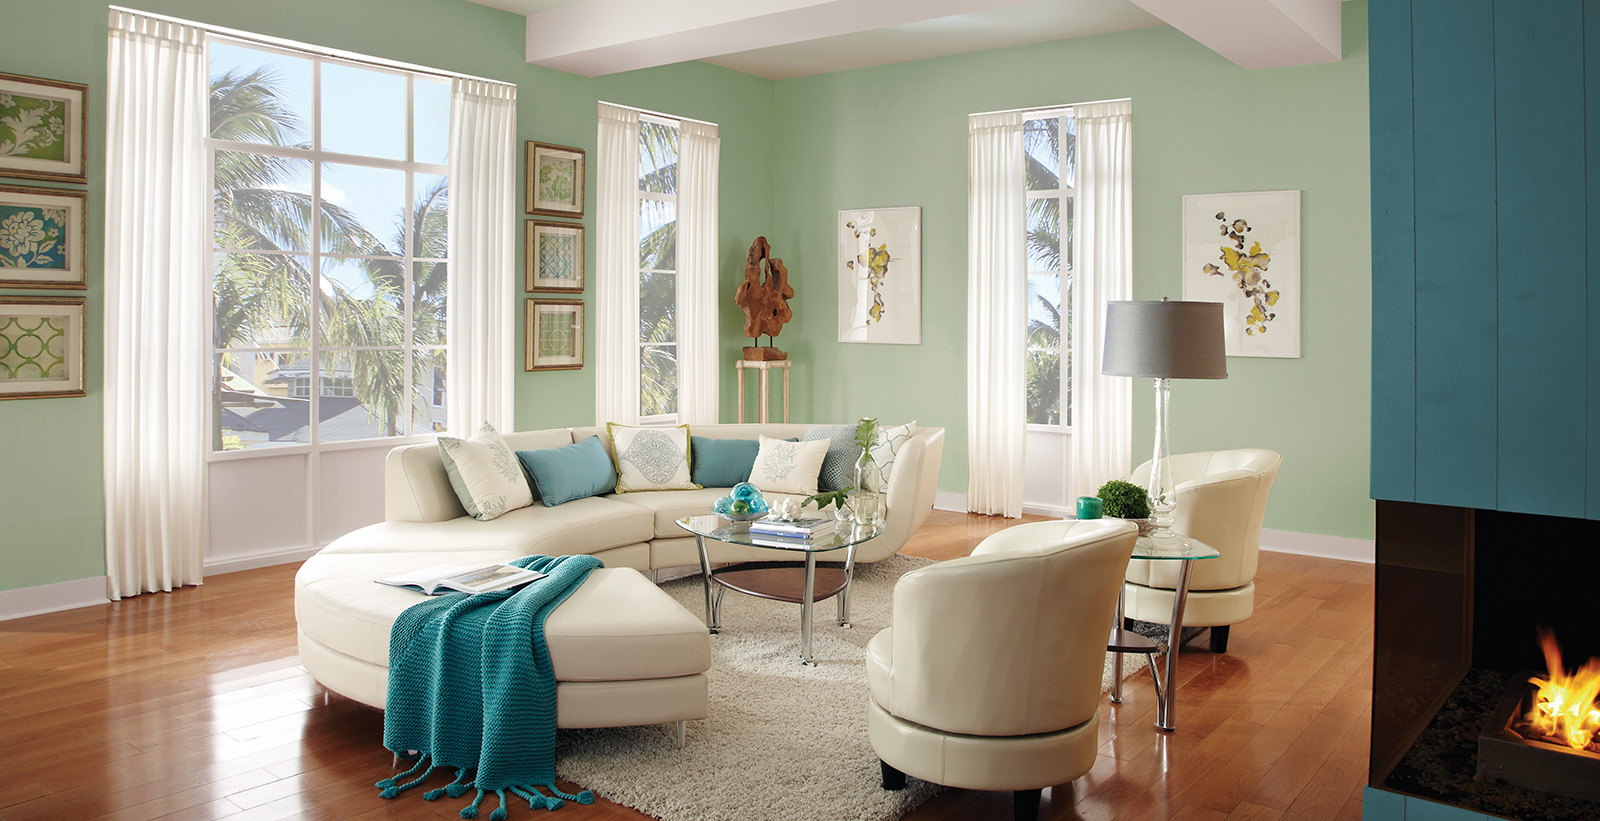 Calming Living Room Ideas and Inspirational Paint Colors ... on Room Painting id=91723